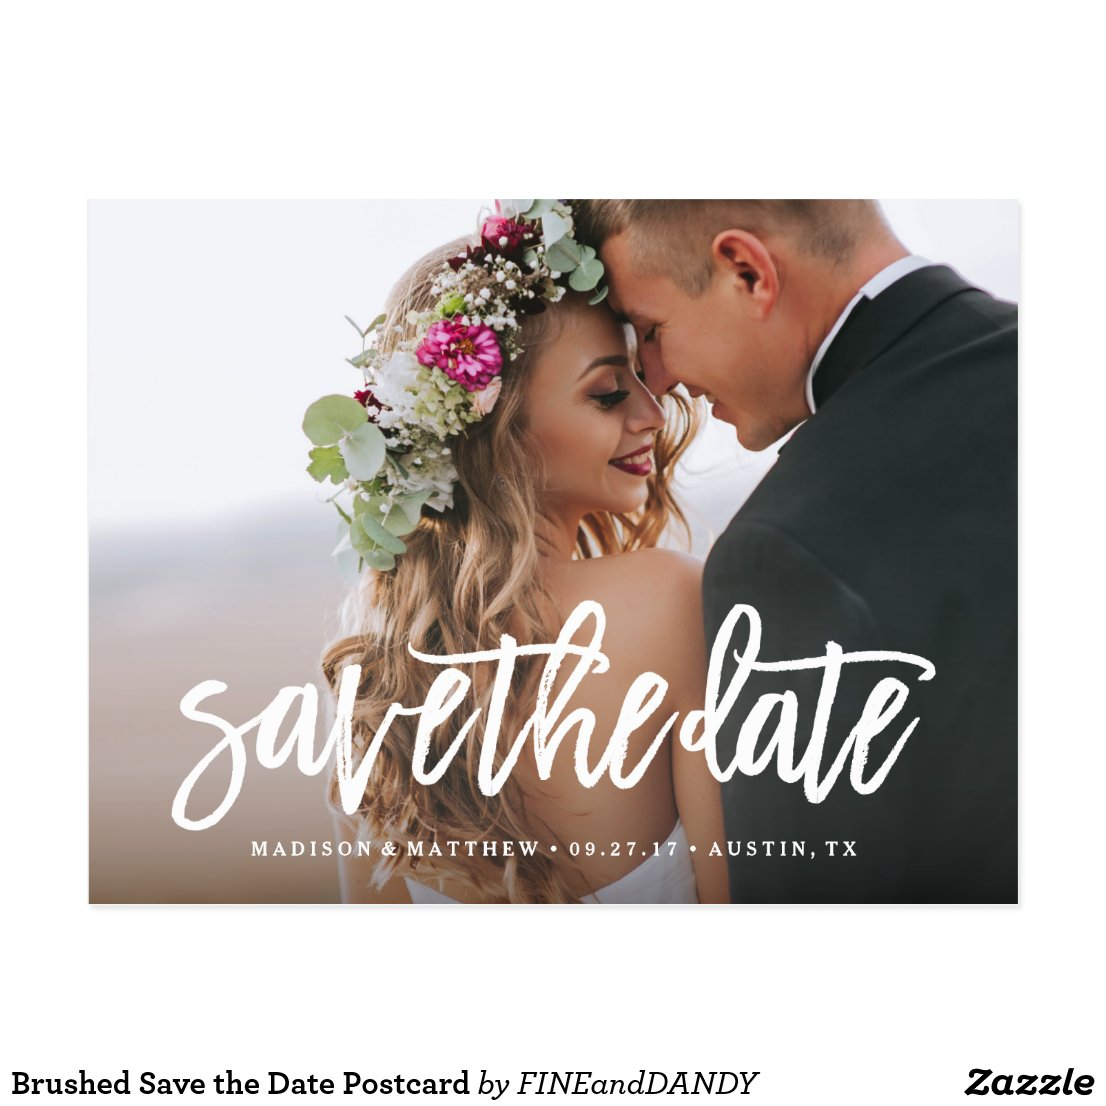 Brushed Save the Date Postcard